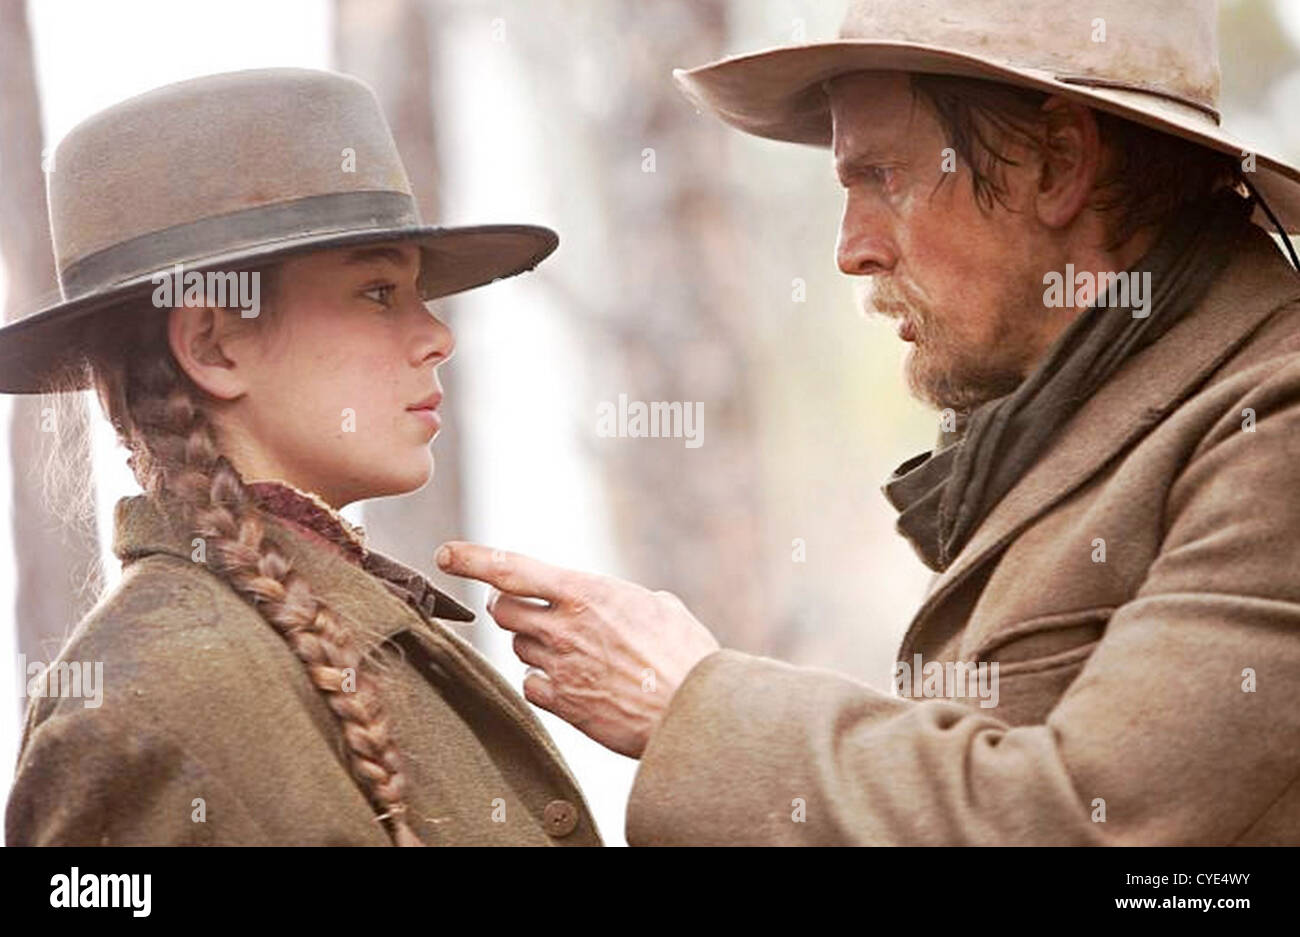 True Grit 2010 Paramount Pictures Film With Hailee Steinfeld And Stock Photo Alamy